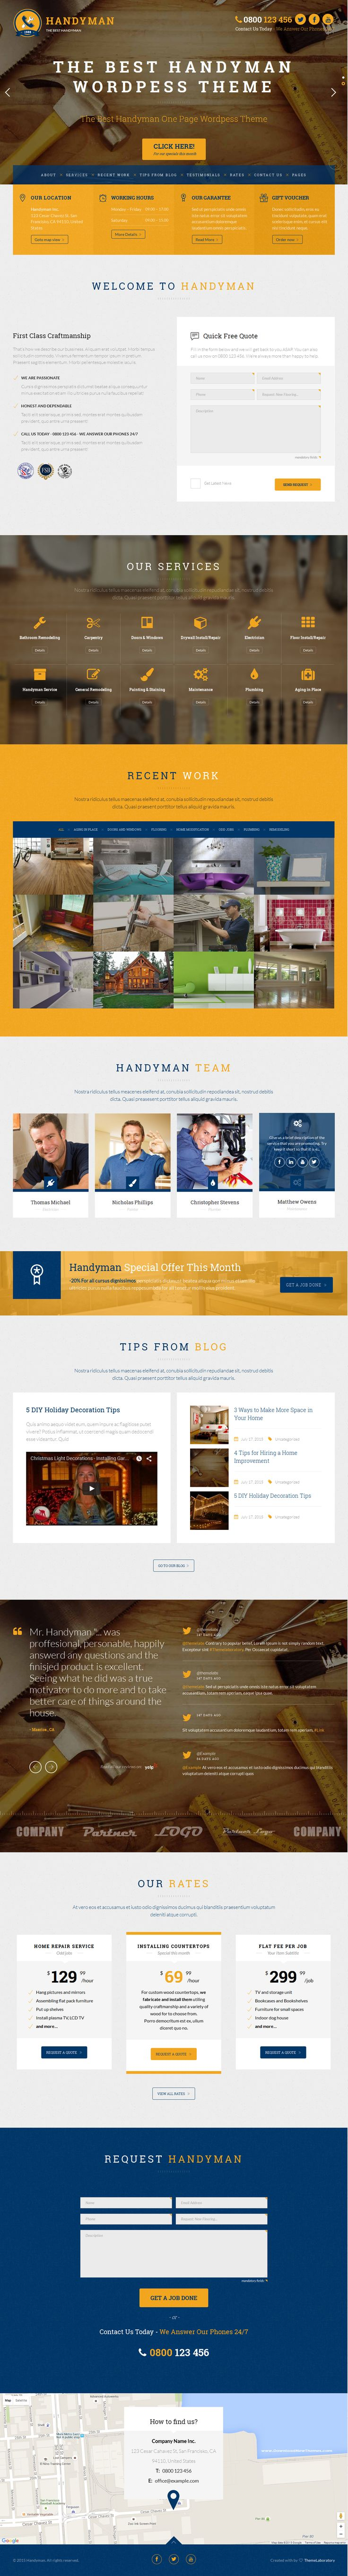 Handyman is popular One Page WordPress child theme for Layers. It is suitable for handyman, repairman, craftsman, plumber, electrician or any kind of service business websites. #website #design download now➯ https://themeforest.net/item/handyman-craftsman-business-wordpress-theme/12249679?ref=Datasata